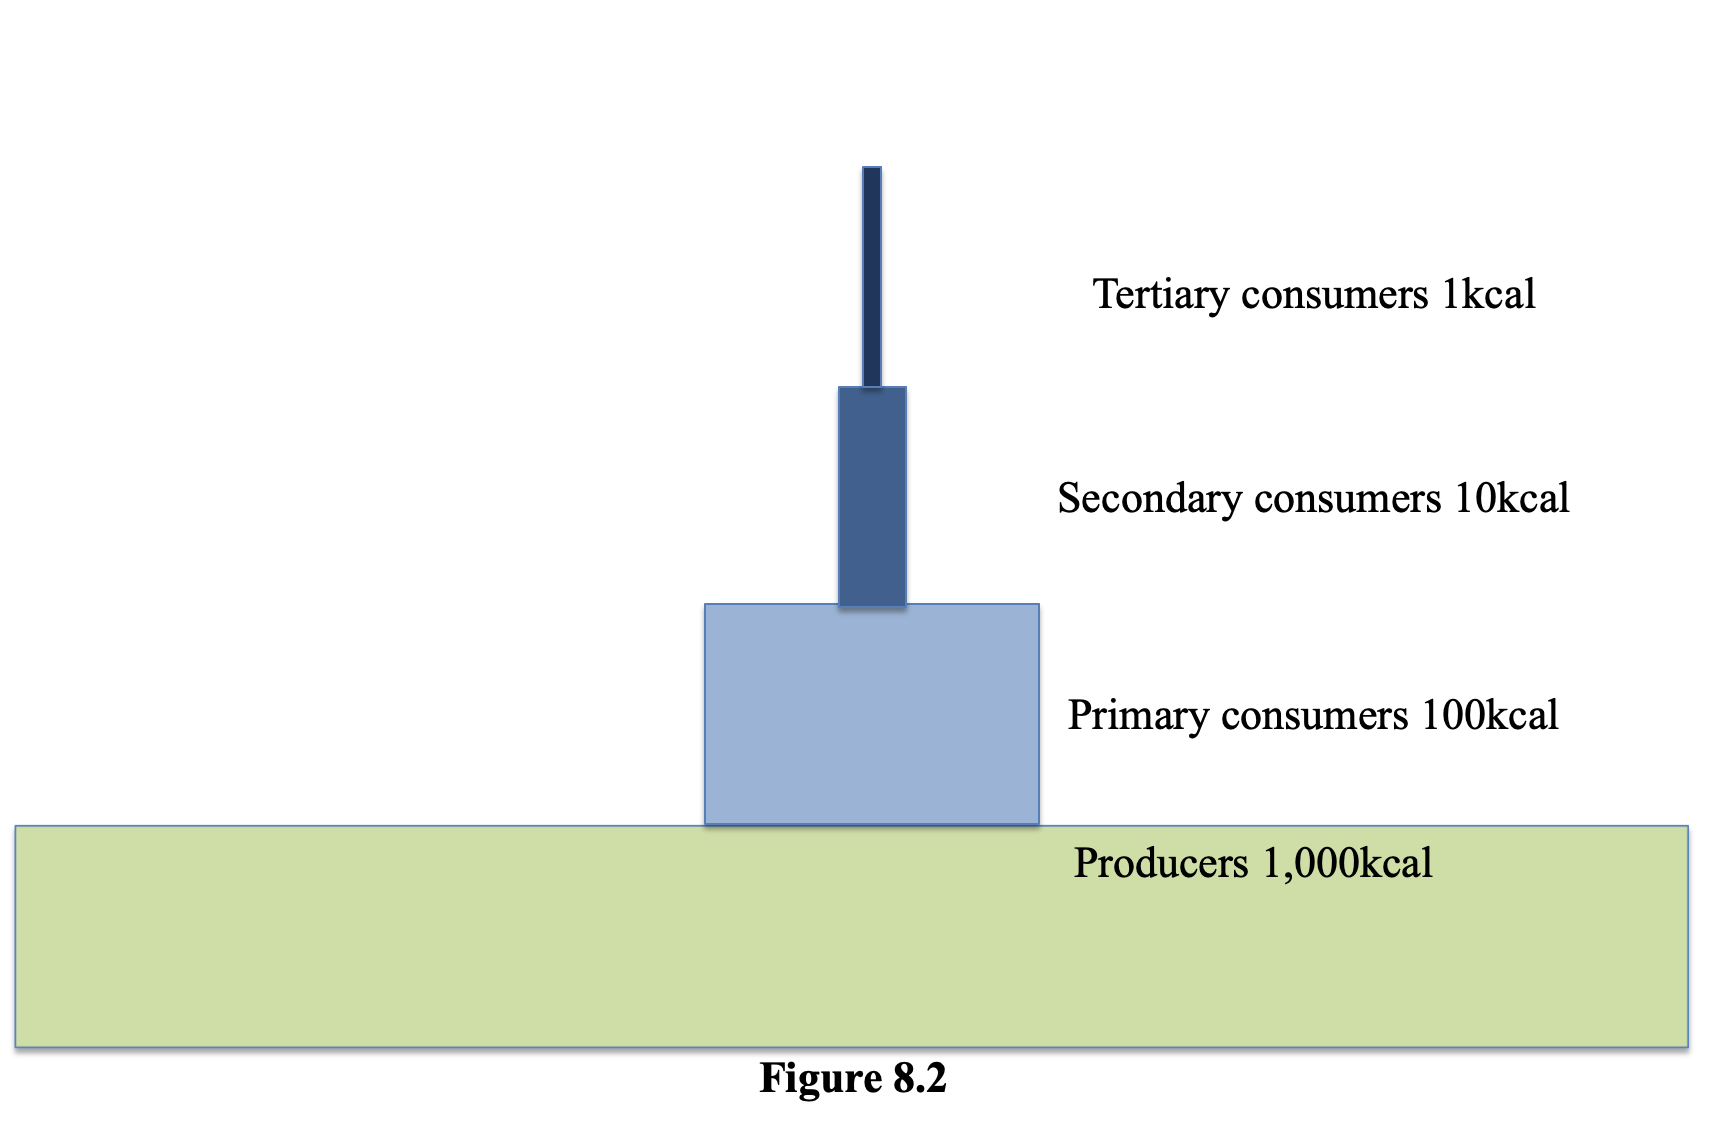 Figure 8.2 shows an example of the energy in each tropic level. The large base shows the producers have 1,000 kcal of energy. Above them, the primary consumers and 100 kcal of energy. Above them the secondary consumers have 10 kcal of energy and at the top the tertiary consumers have 1 kcal of energy.